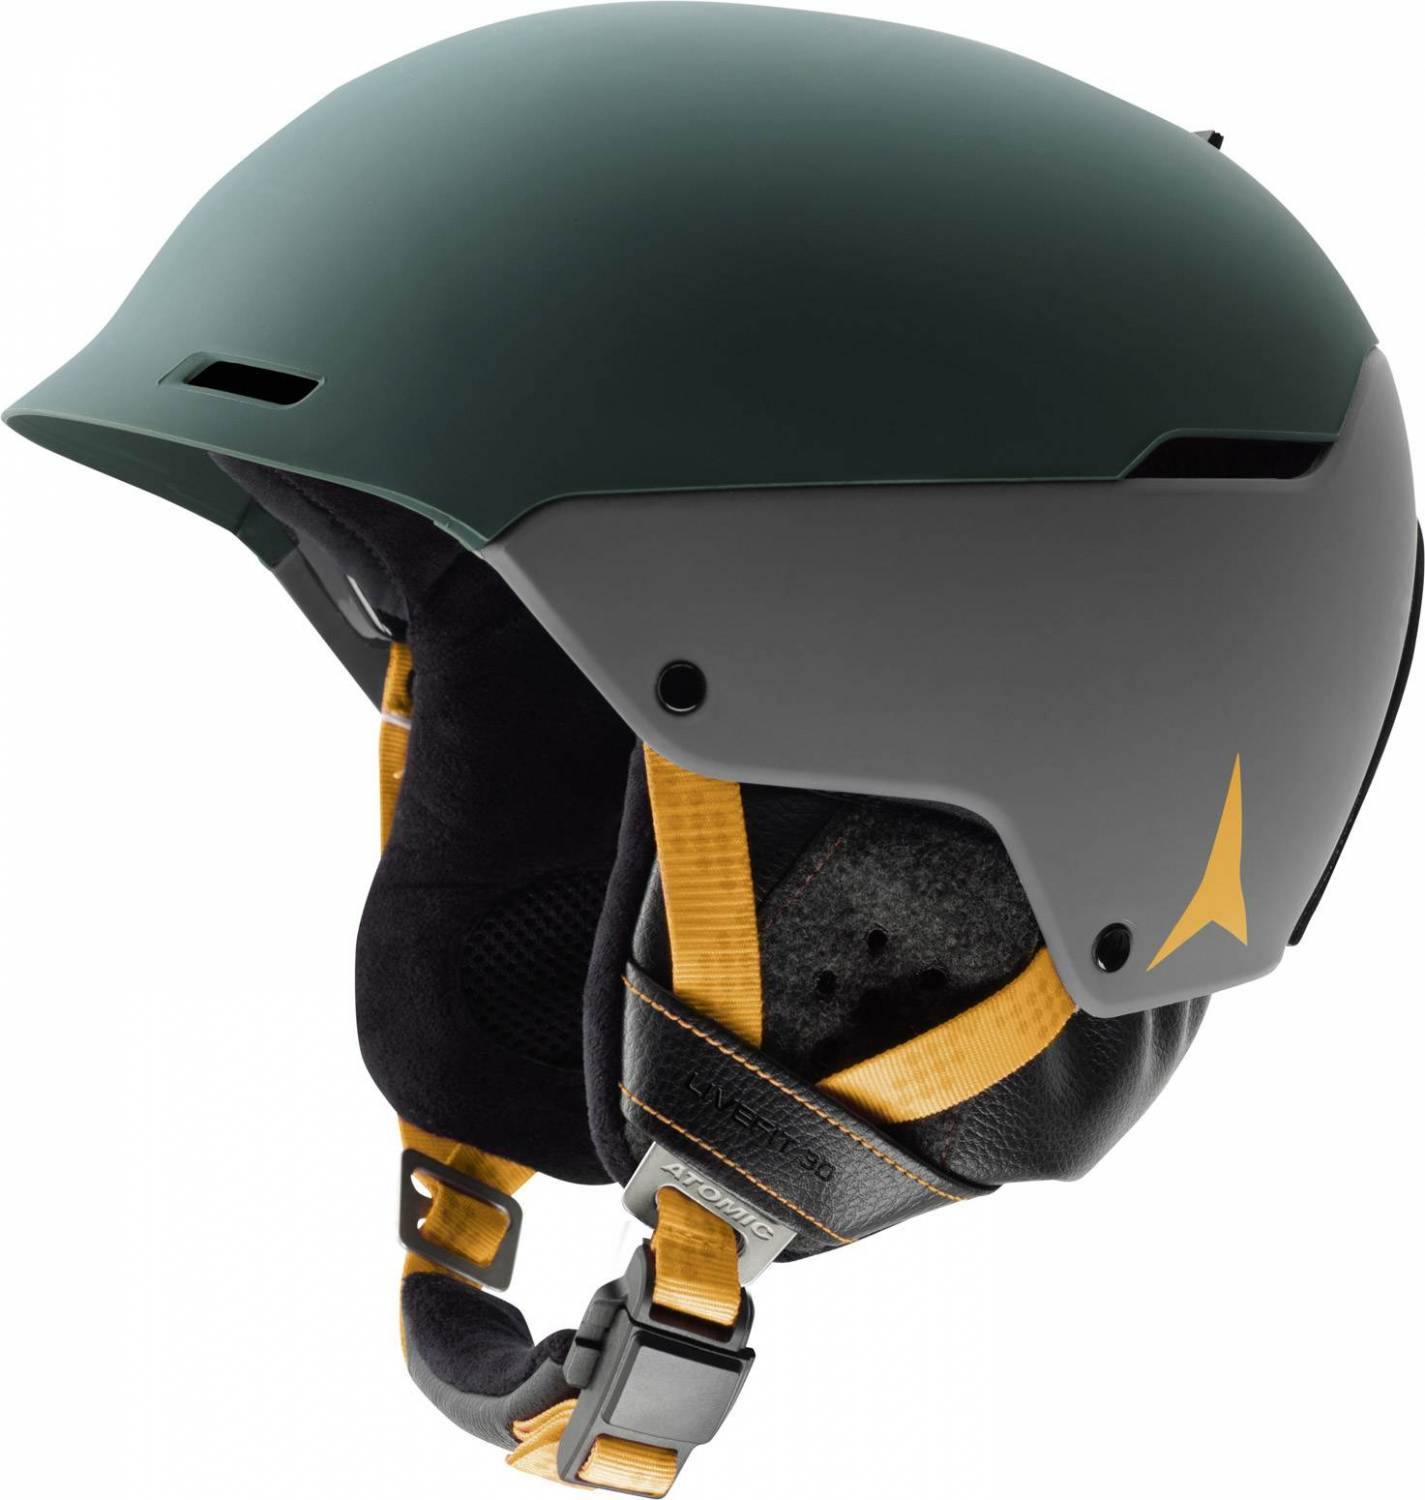 Atomic Automatic Live Fit 3D Skihelm (Kopfumfang: 56-59 cm, grey/green)